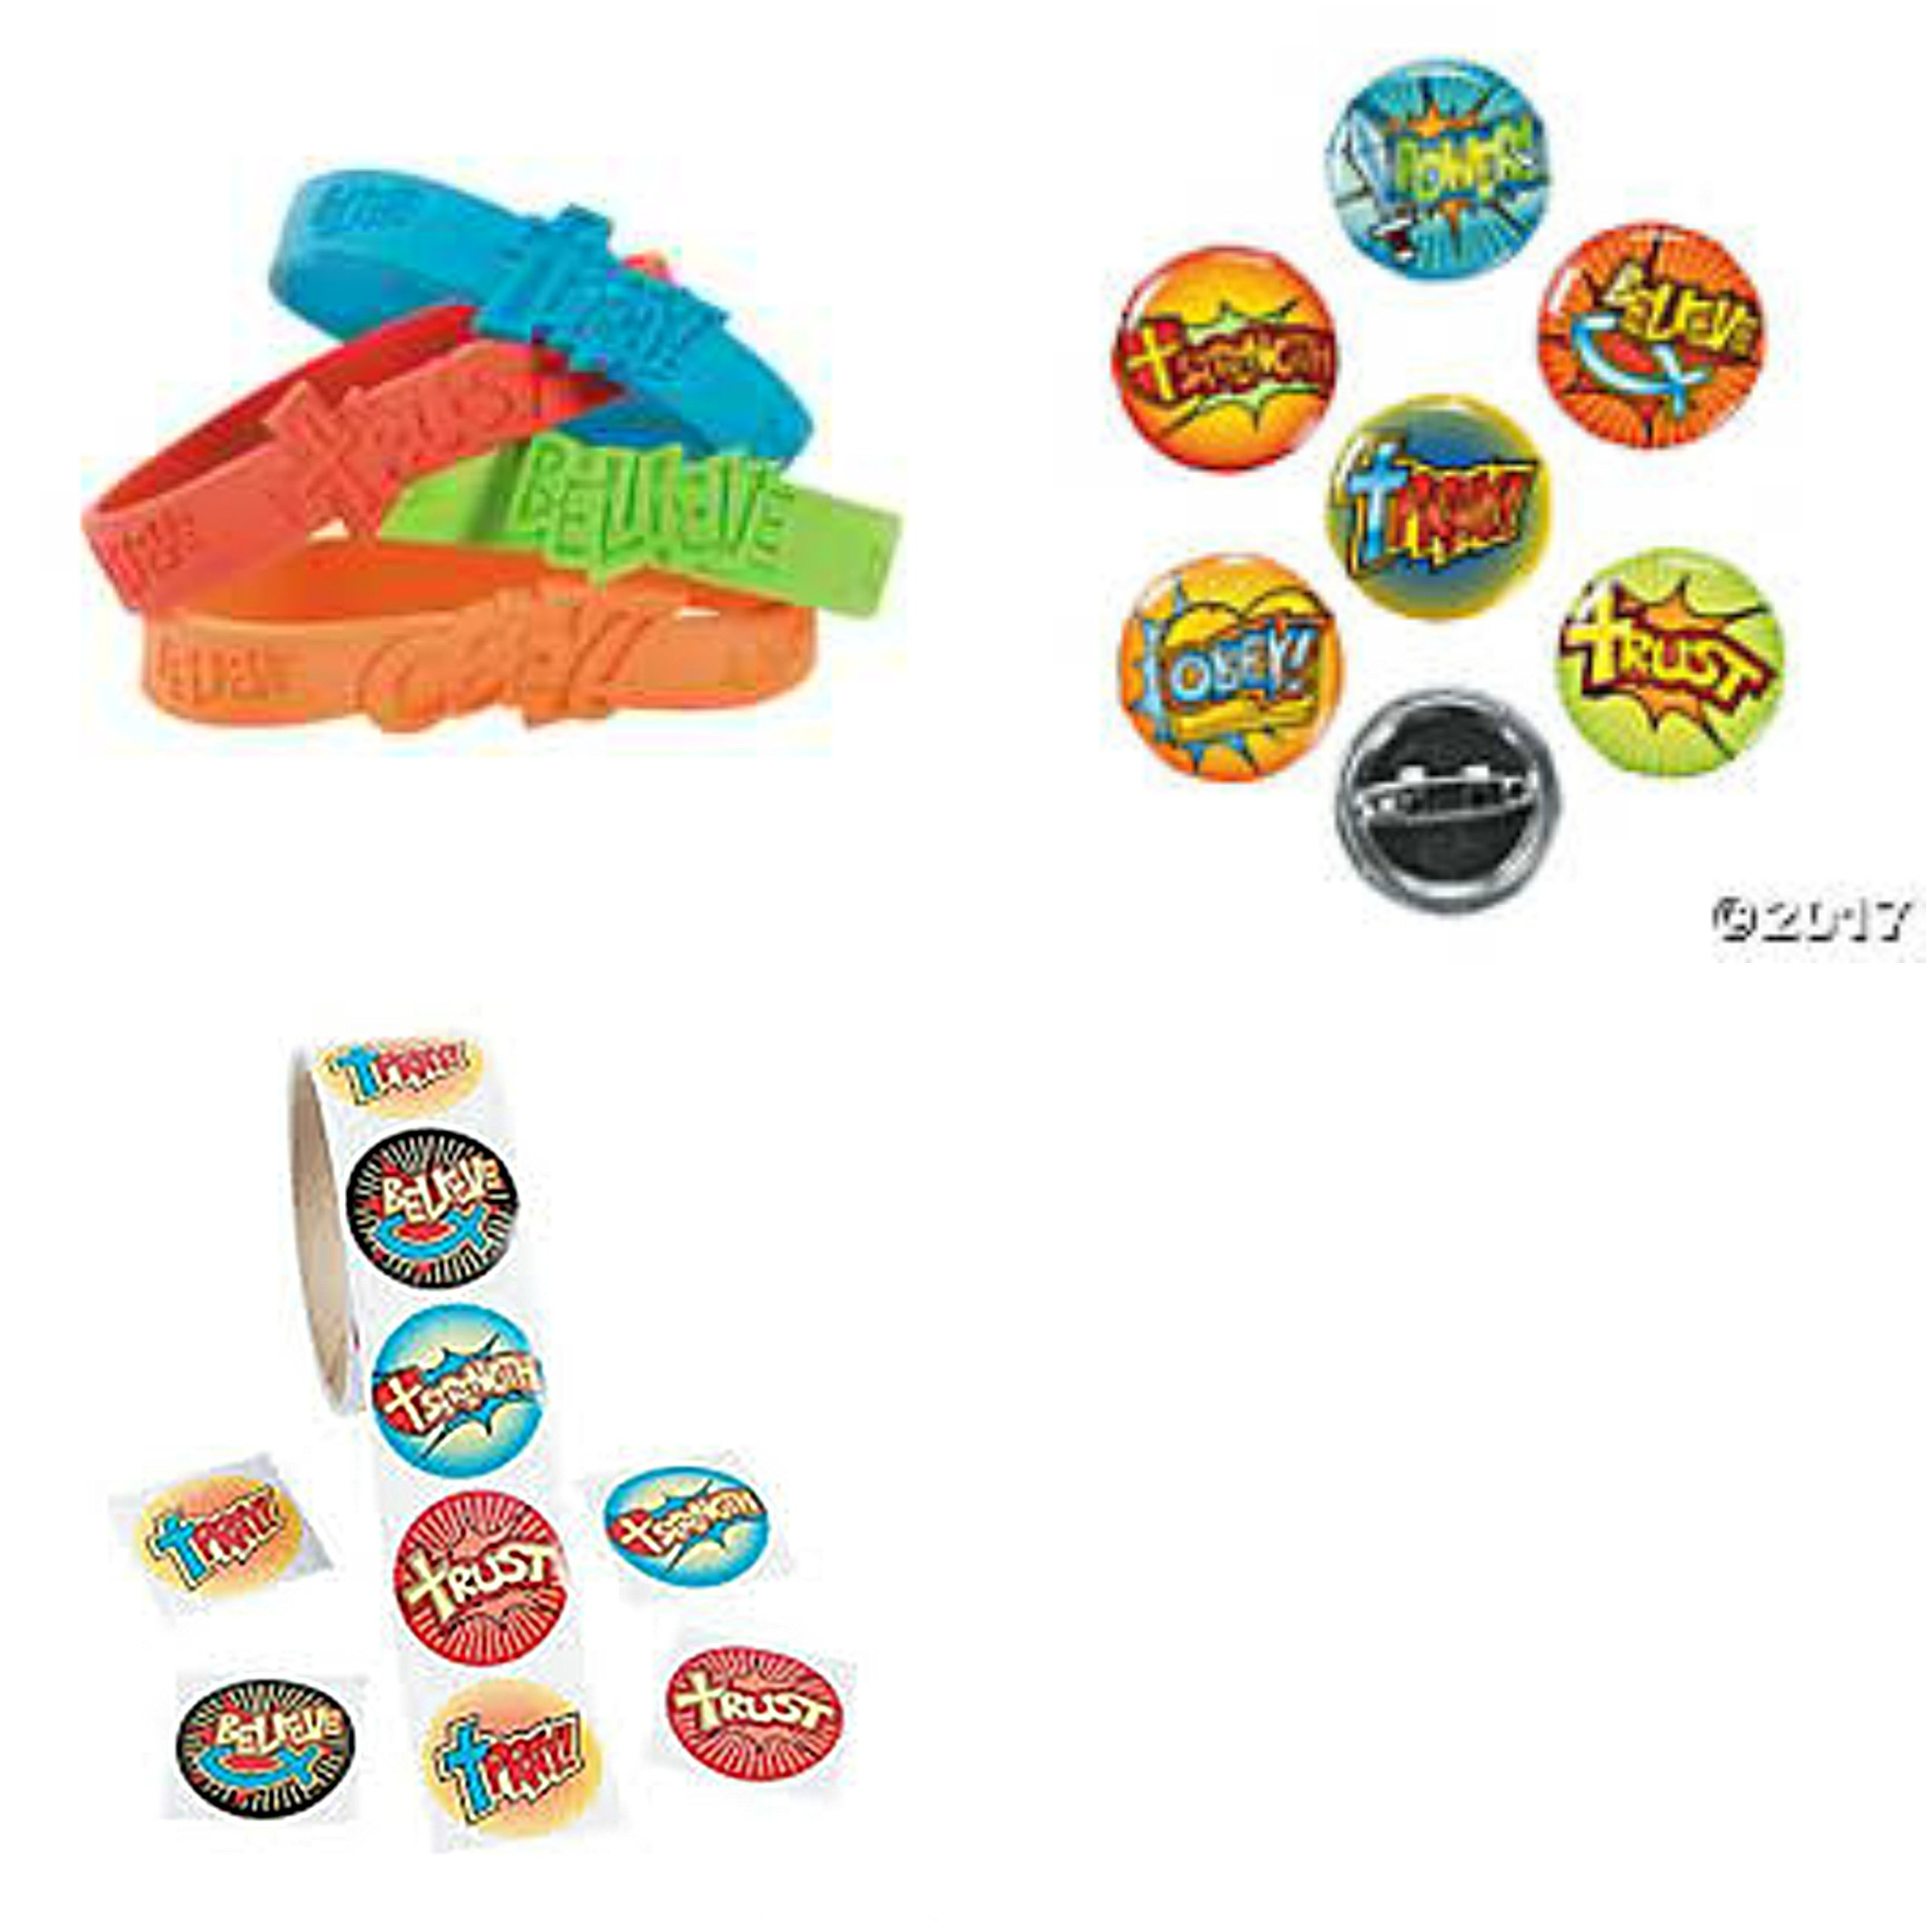 VBS Religious Christian 24 Rubber Bracelets 48 Mini Buttons Roll of 100 Stickers by Fun Express